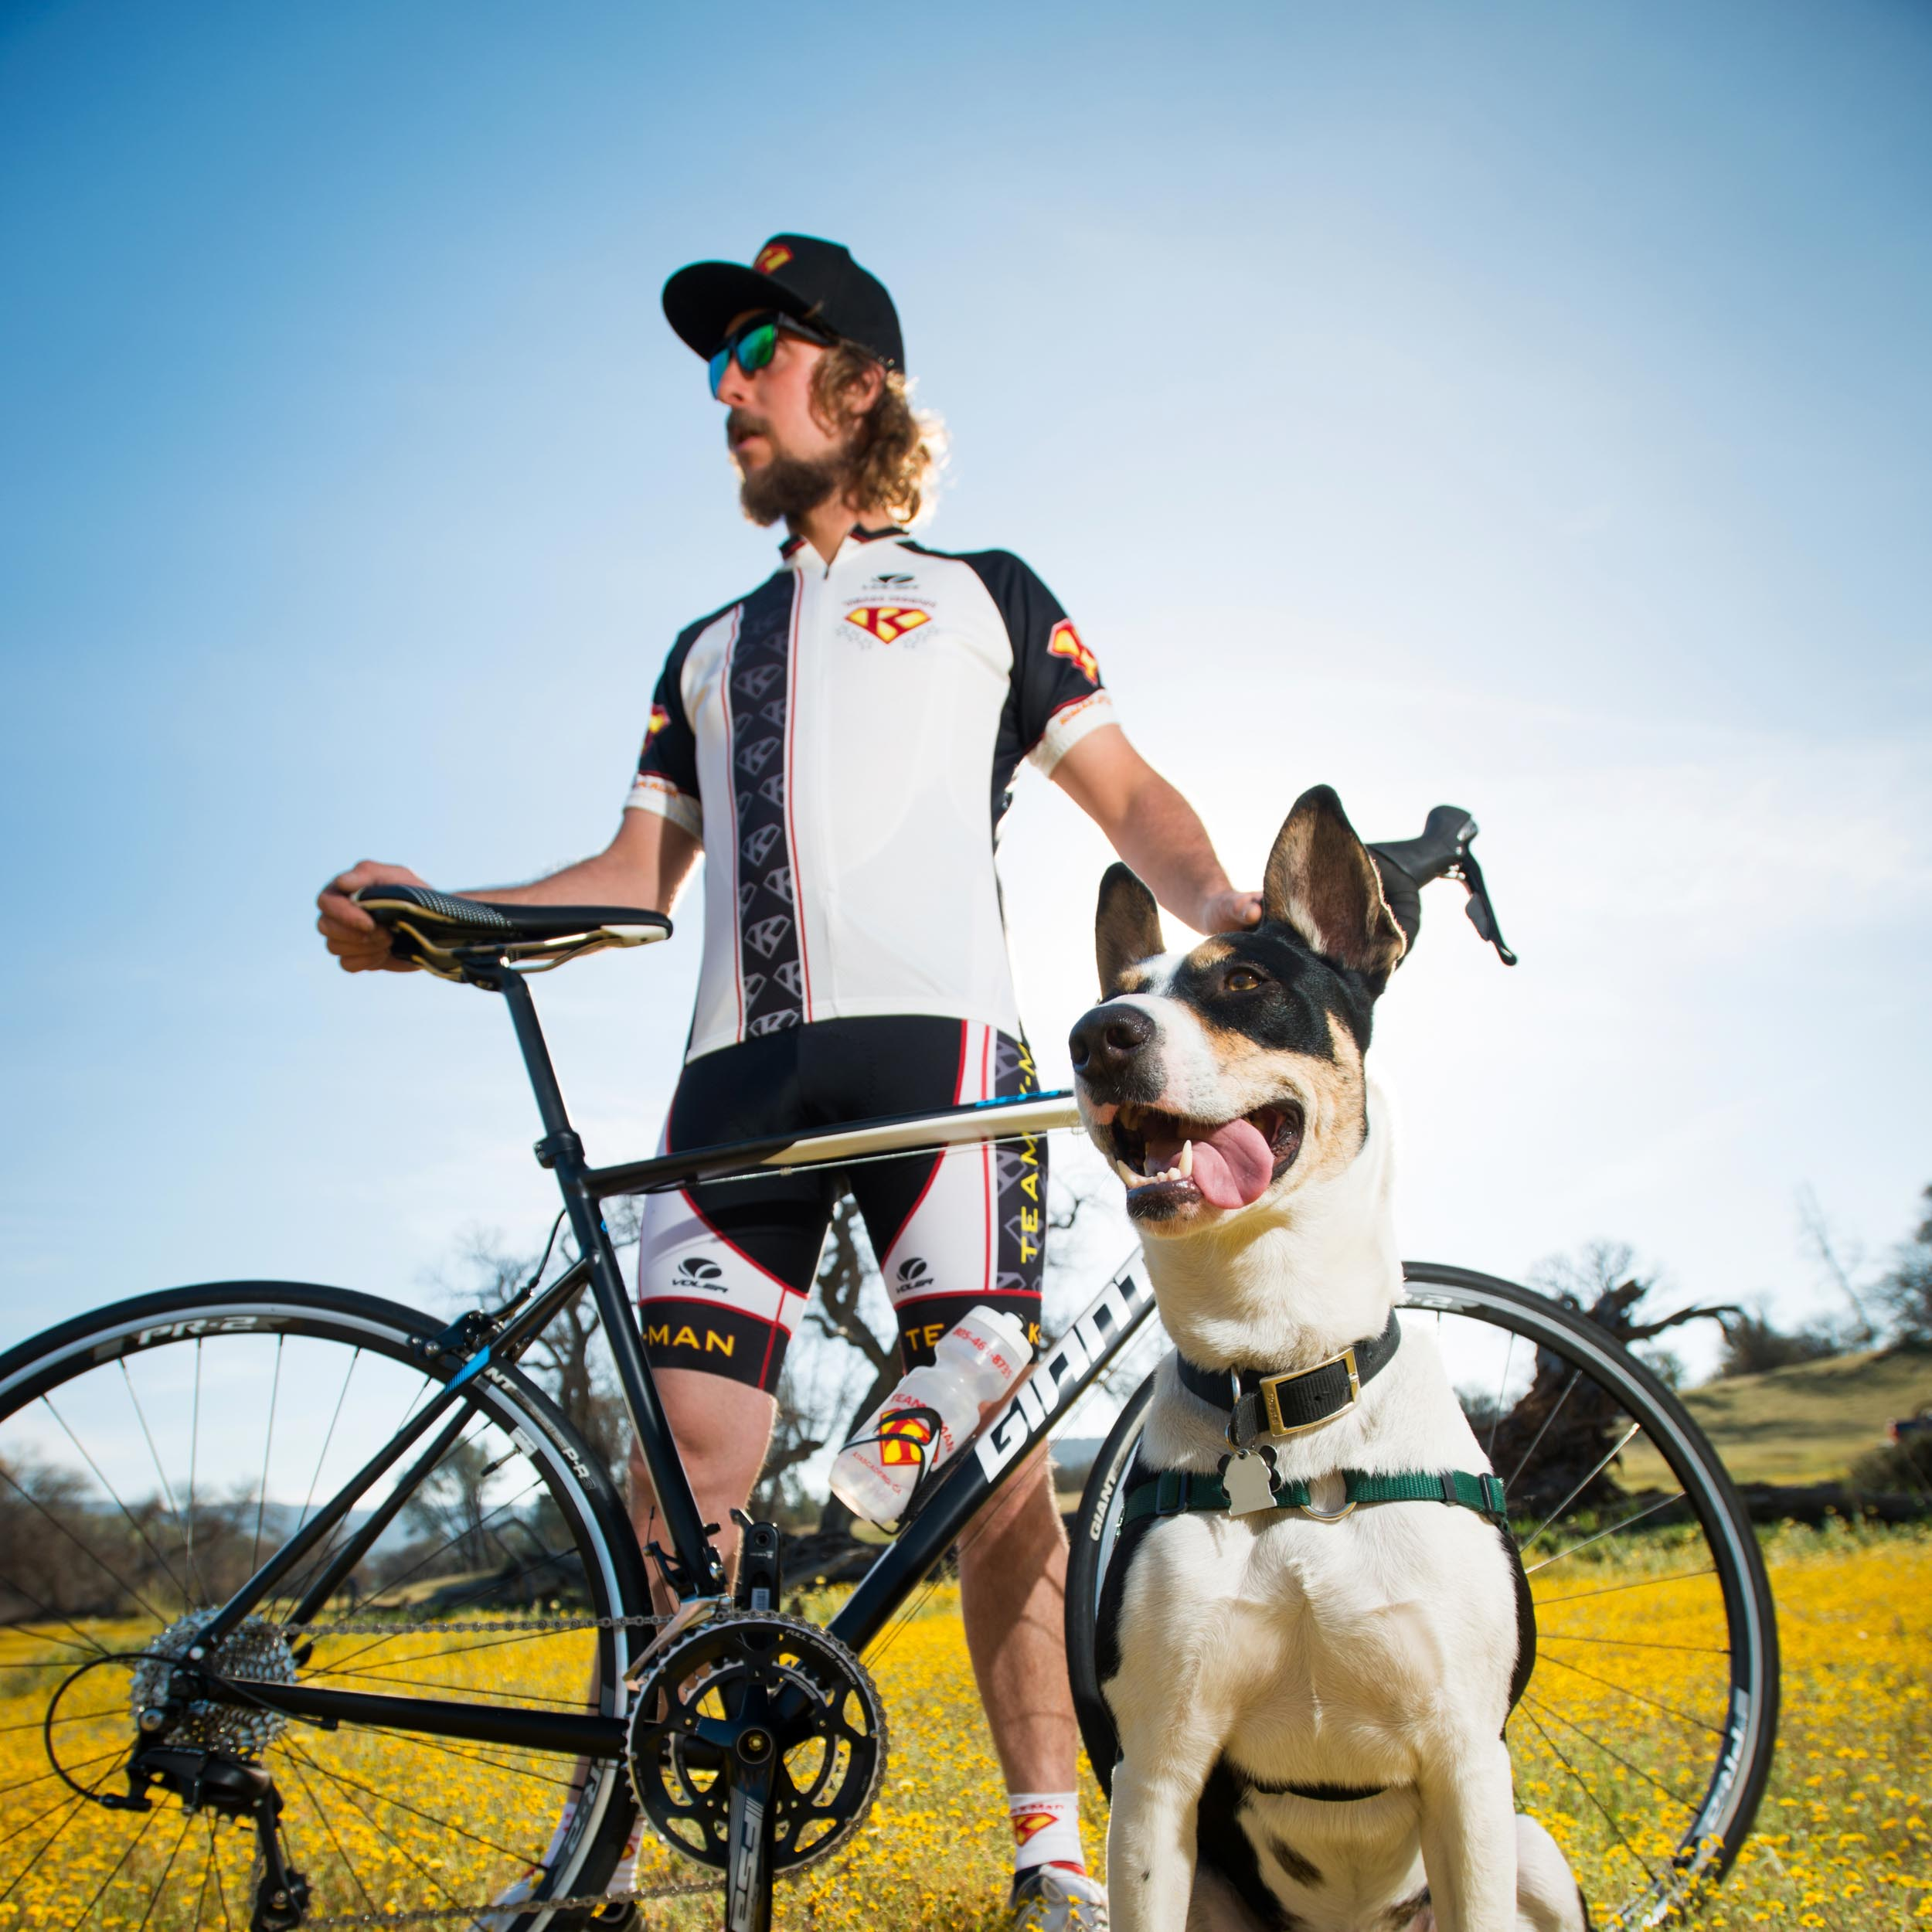 kman_cyclery_gear_trail_dog_breaker_crop_w.jpg